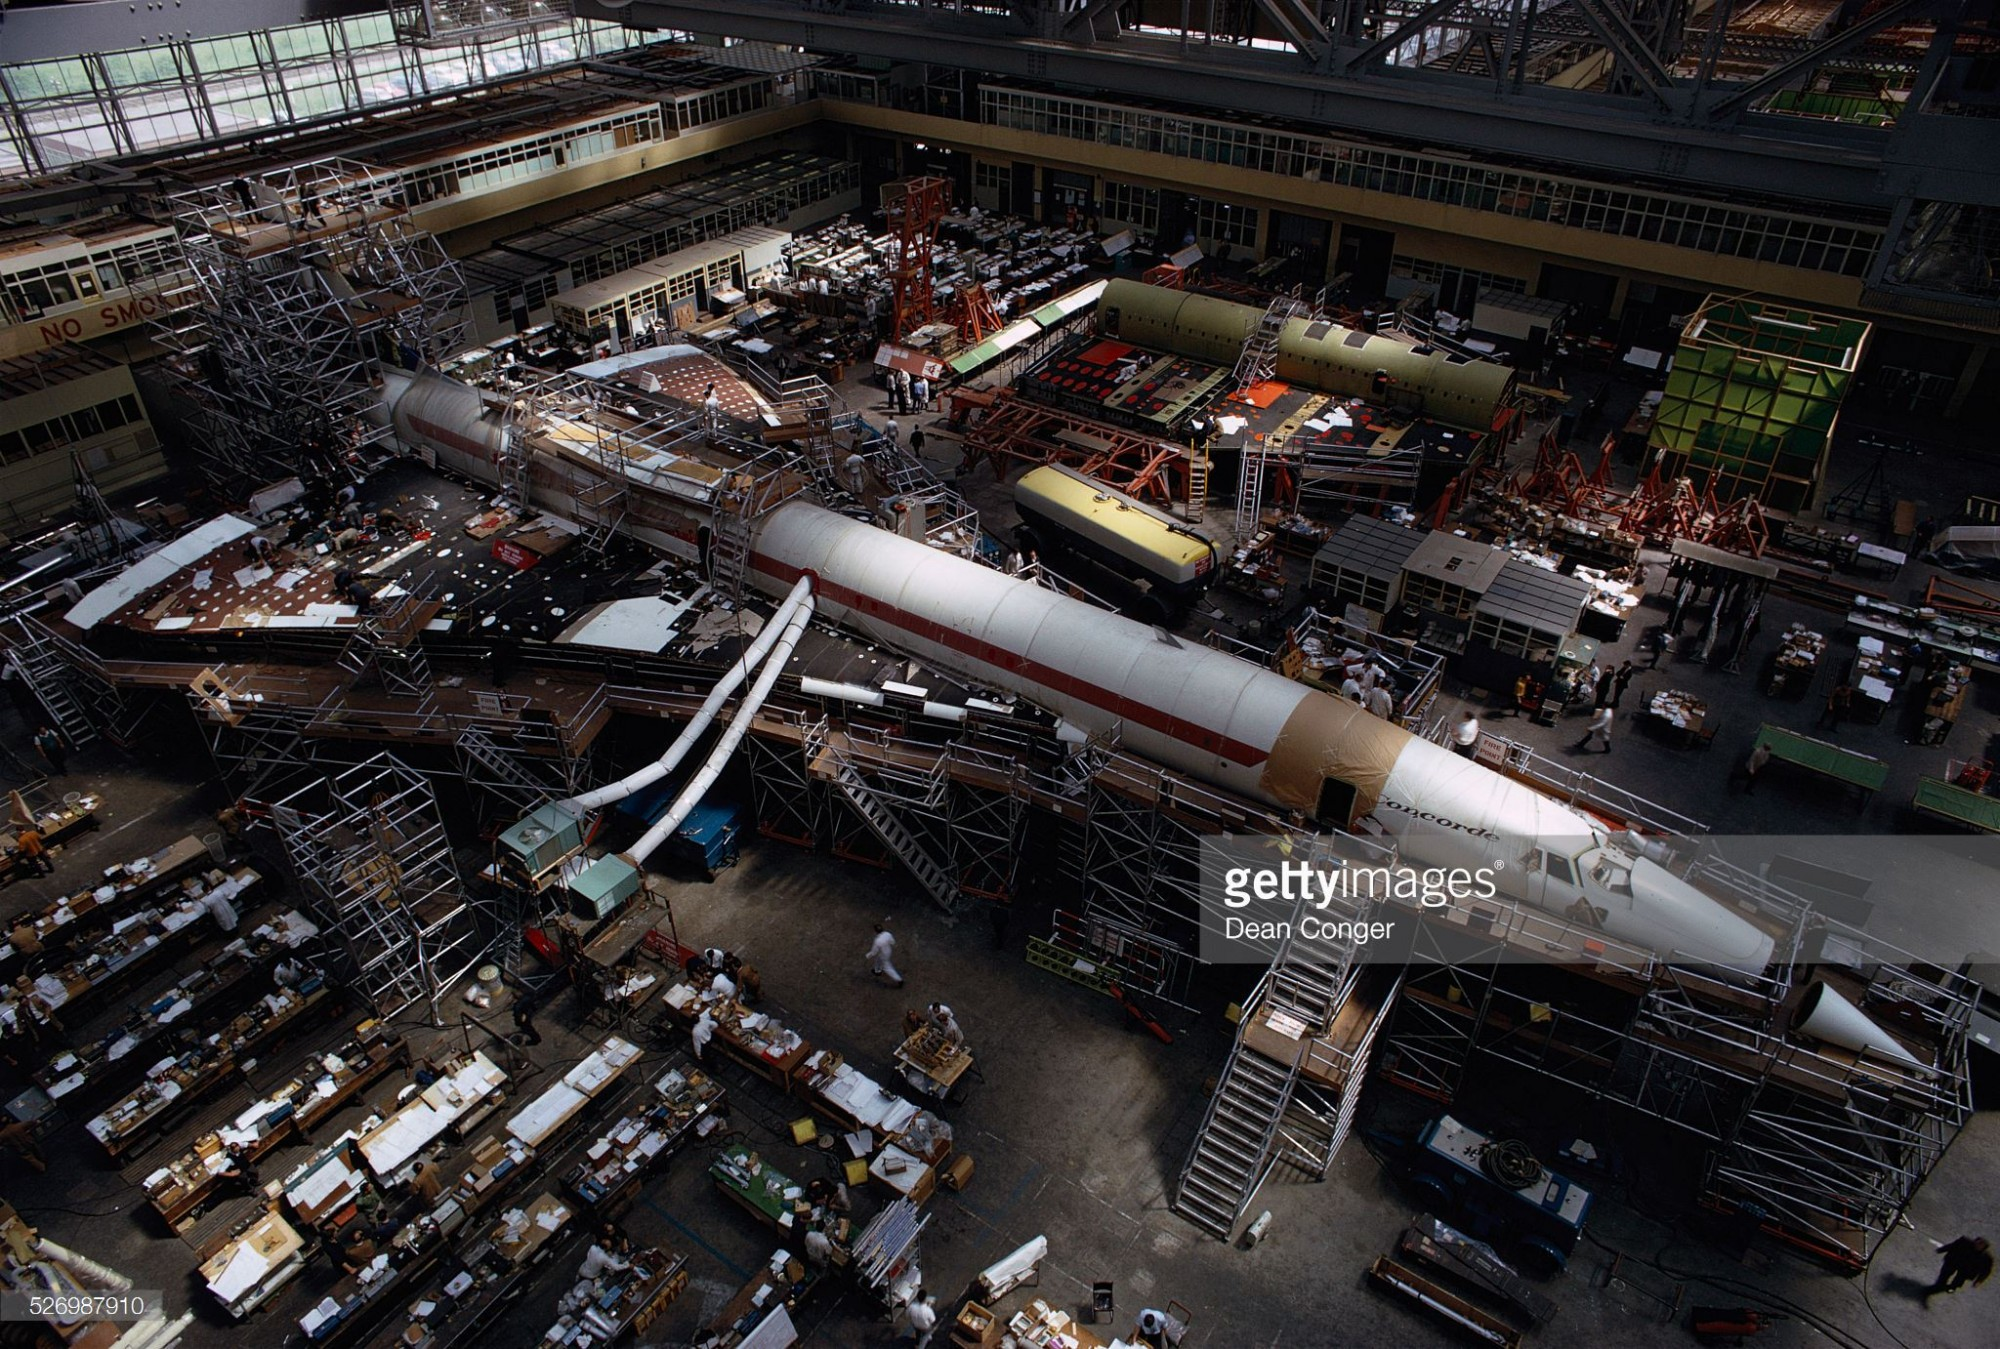 1968 concorde-under-construction-at-the-british-aircraft. Dean Conger